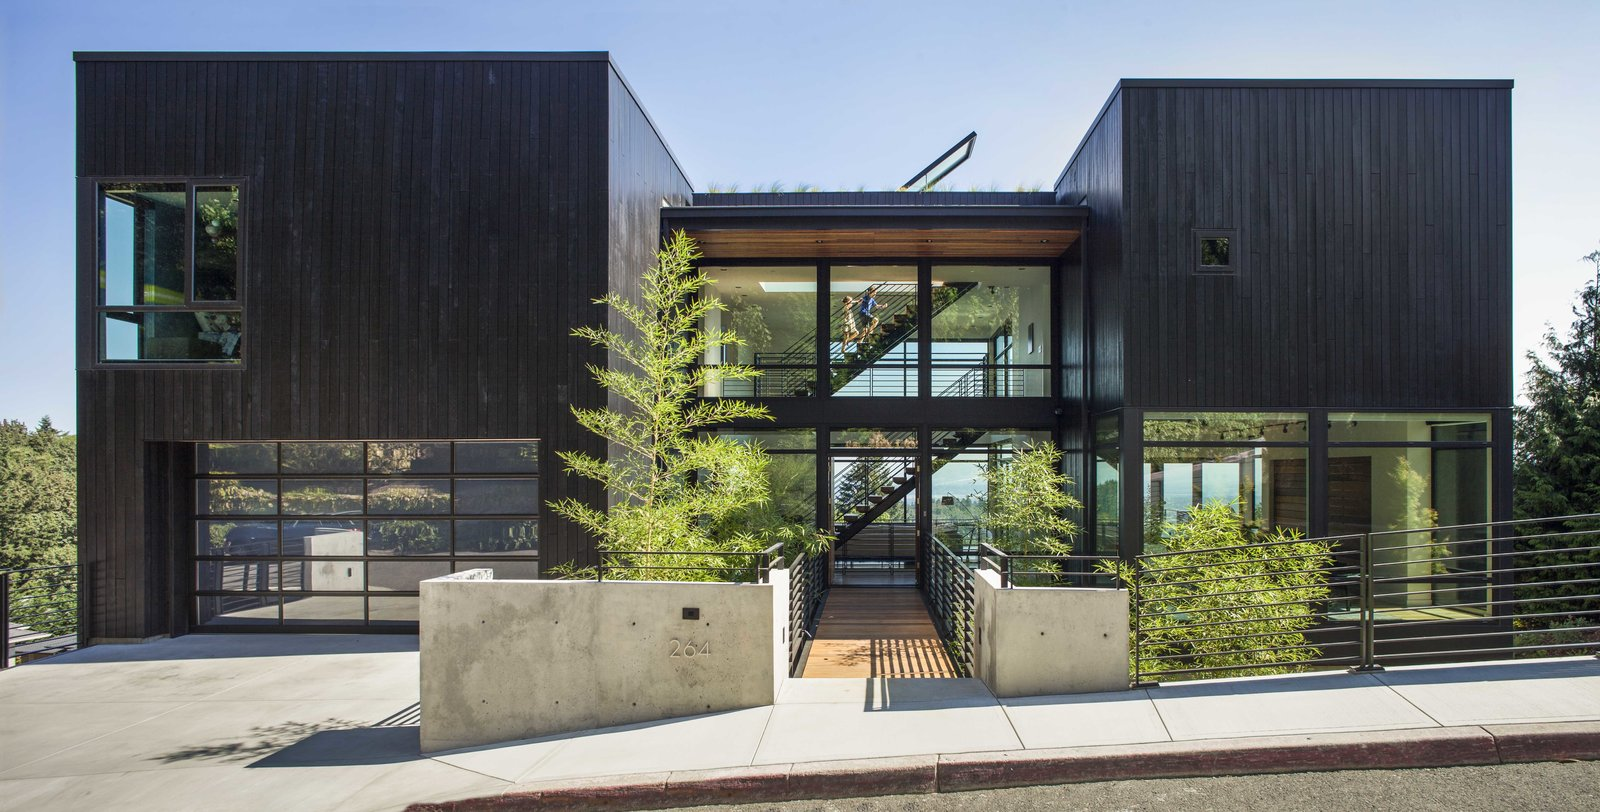 Articles about 5 exterior home renovations on Dwell.com